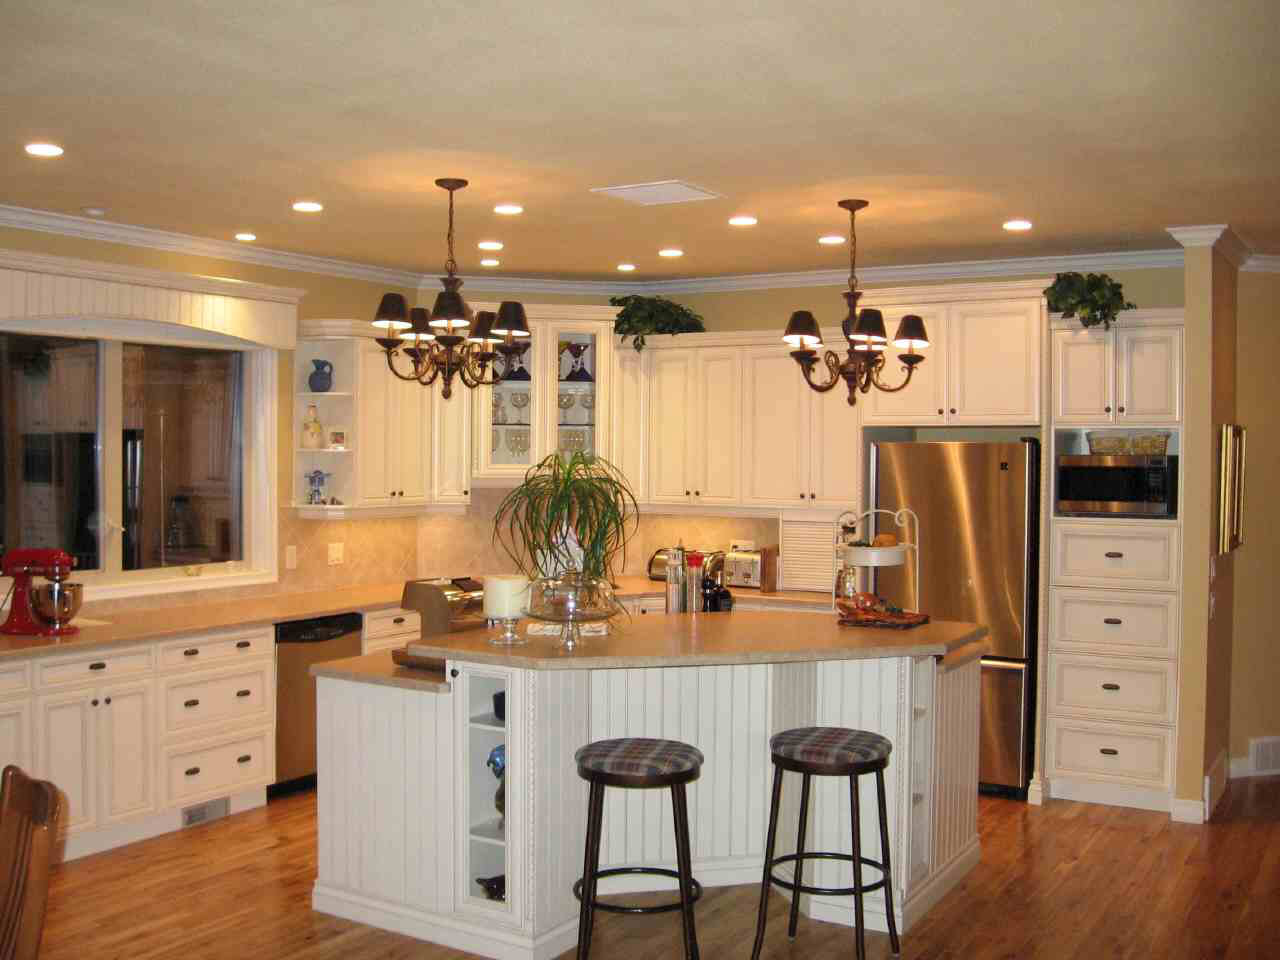 interior kitchen design ideas home ideas decoration